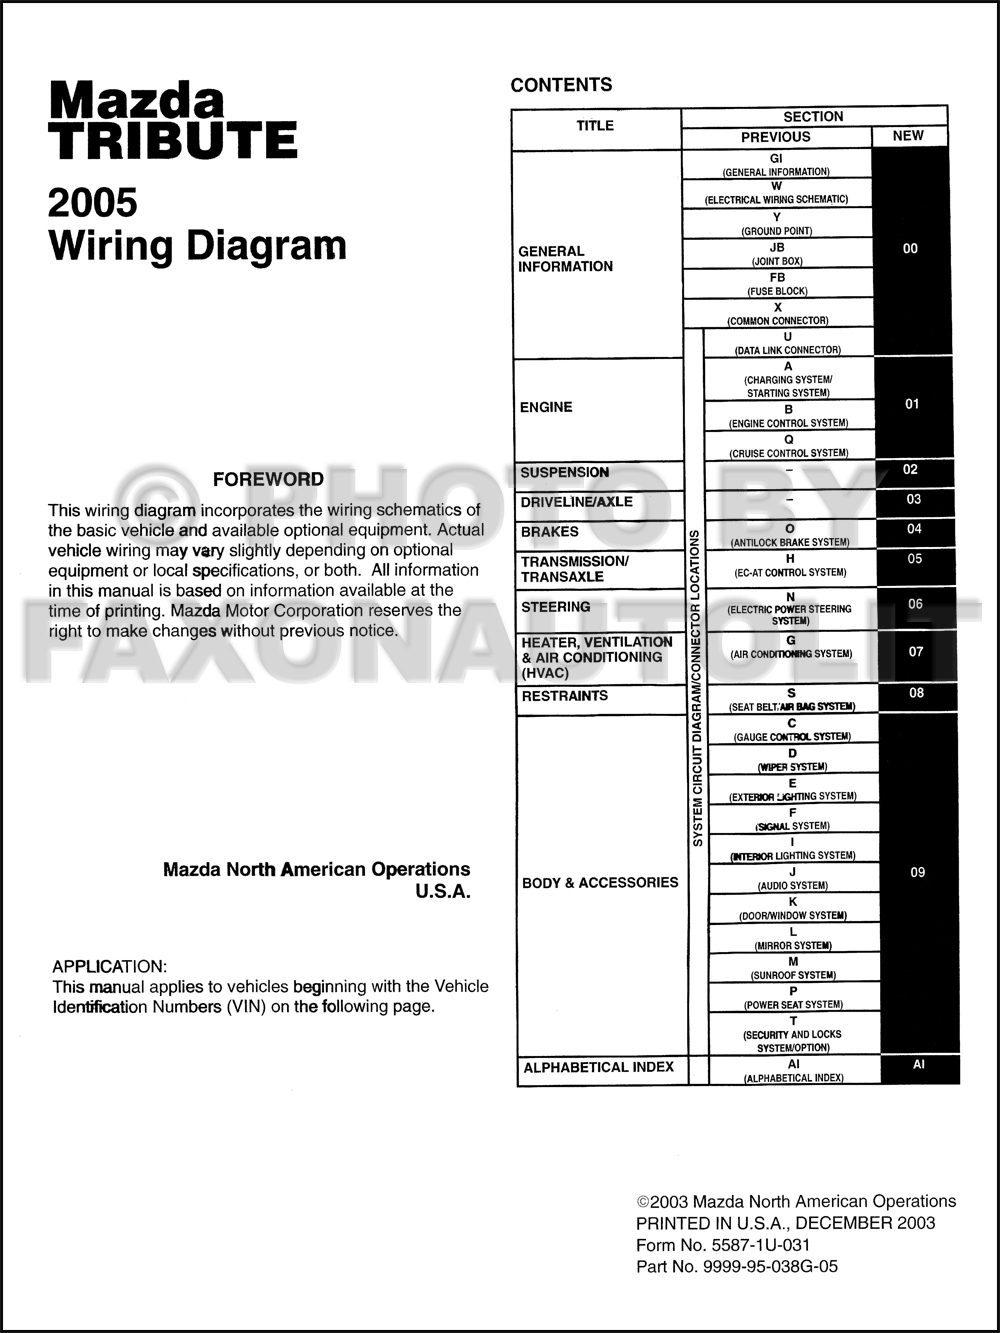 [WQZT_9871]  Mazda Tribute Wiring Diagram Manual Diagram Base Website Diagram Manual -  VENNDIAGRAMSMARTART.PROGETTOALBERESE.IT | Mazda Radio Wiring Diagram |  | Diagram Base Website Full Edition - progettoalberese